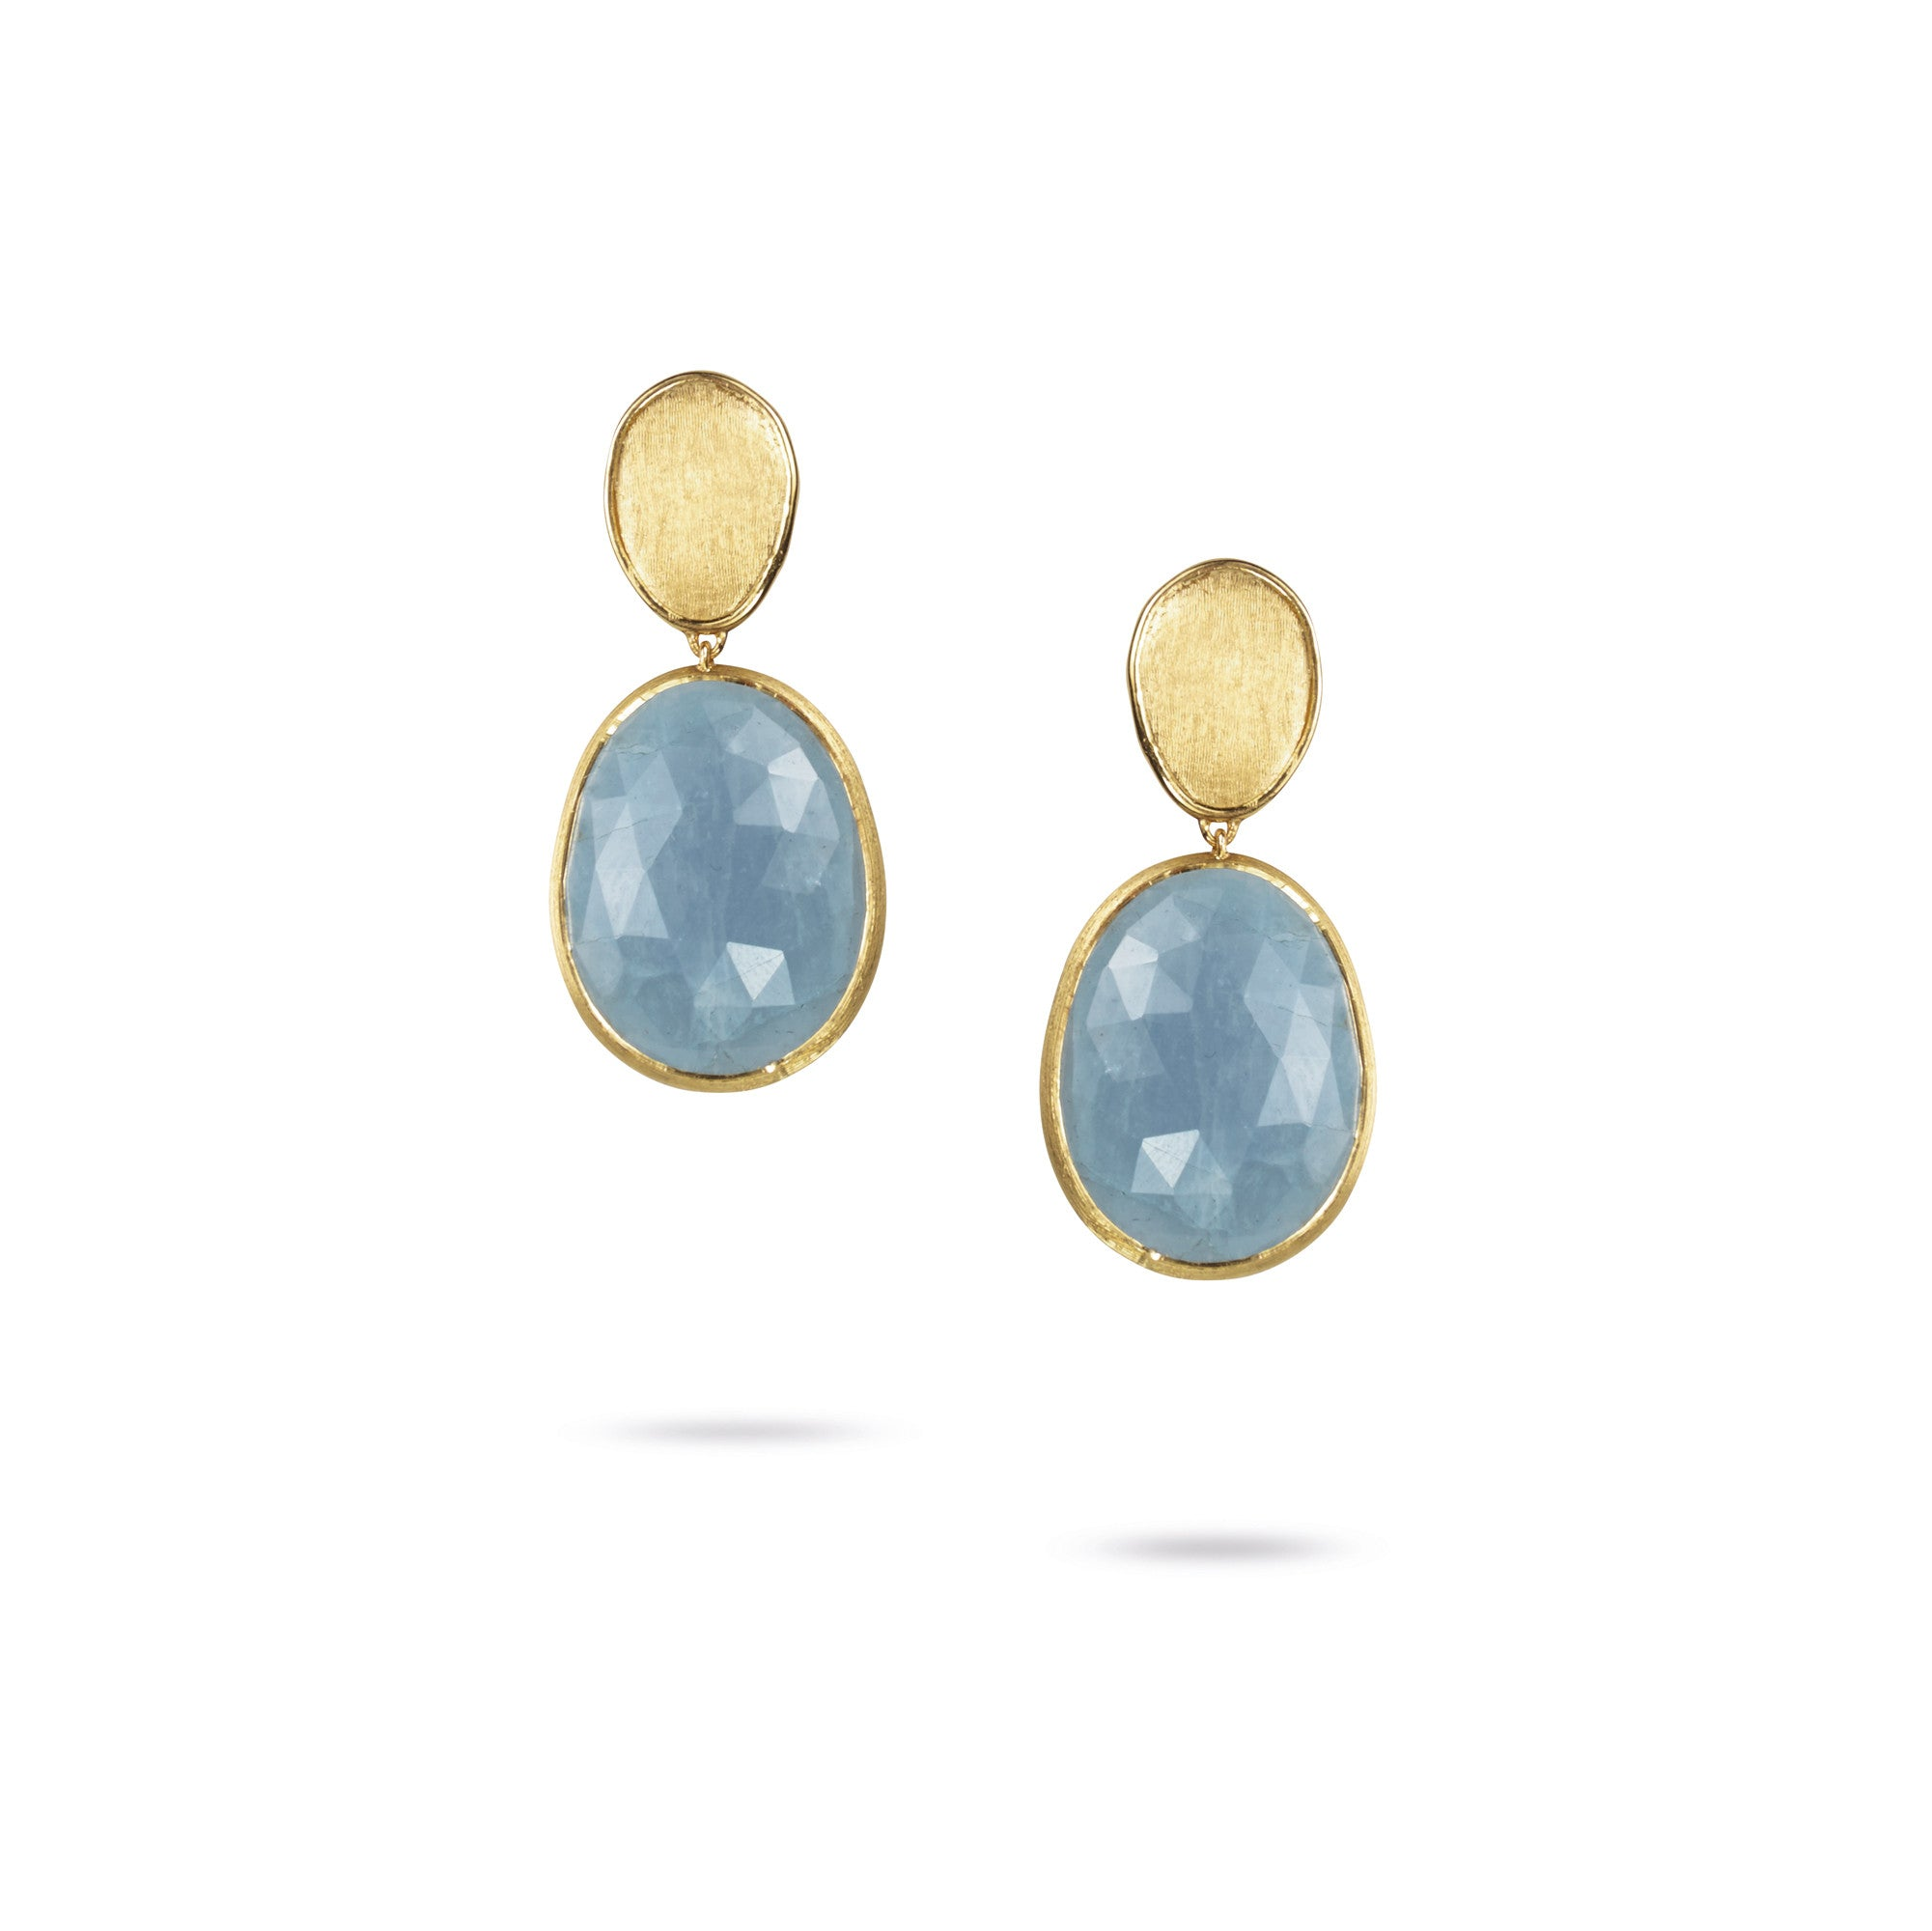 18K Yellow Gold Small Aquamarine Earrings